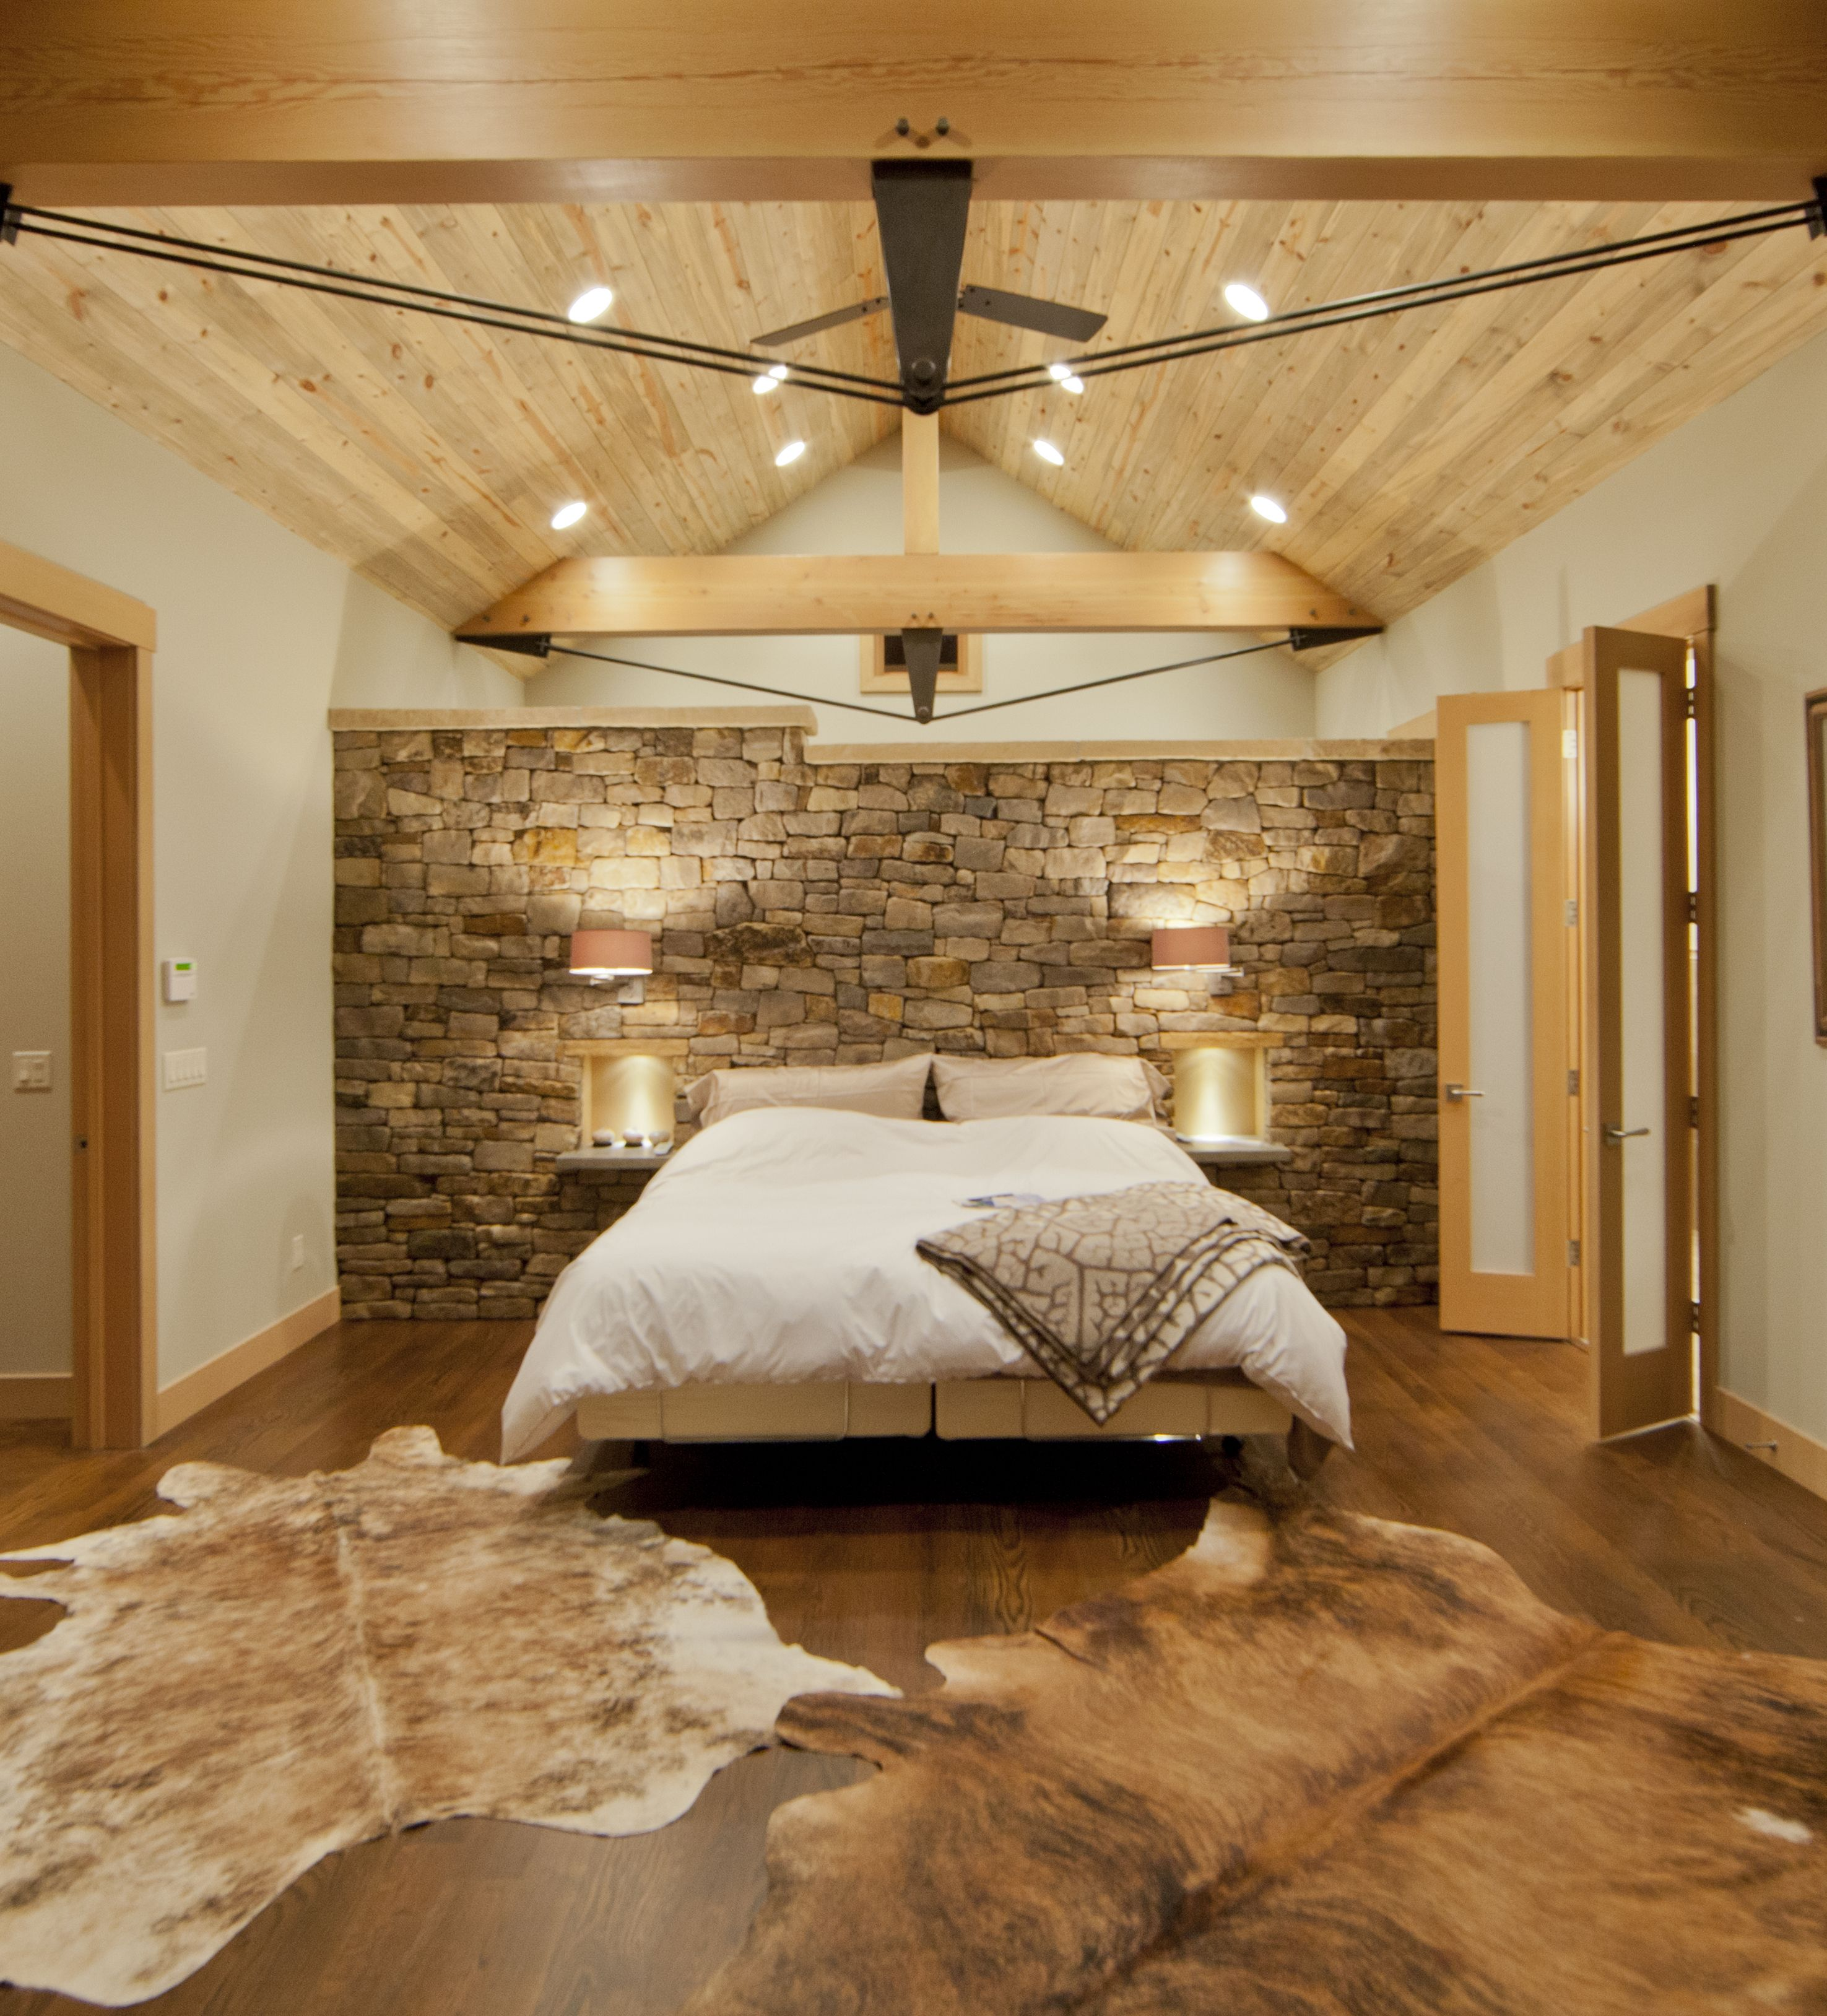 Contemporary master bedroom with exposed beams, wood tonged and